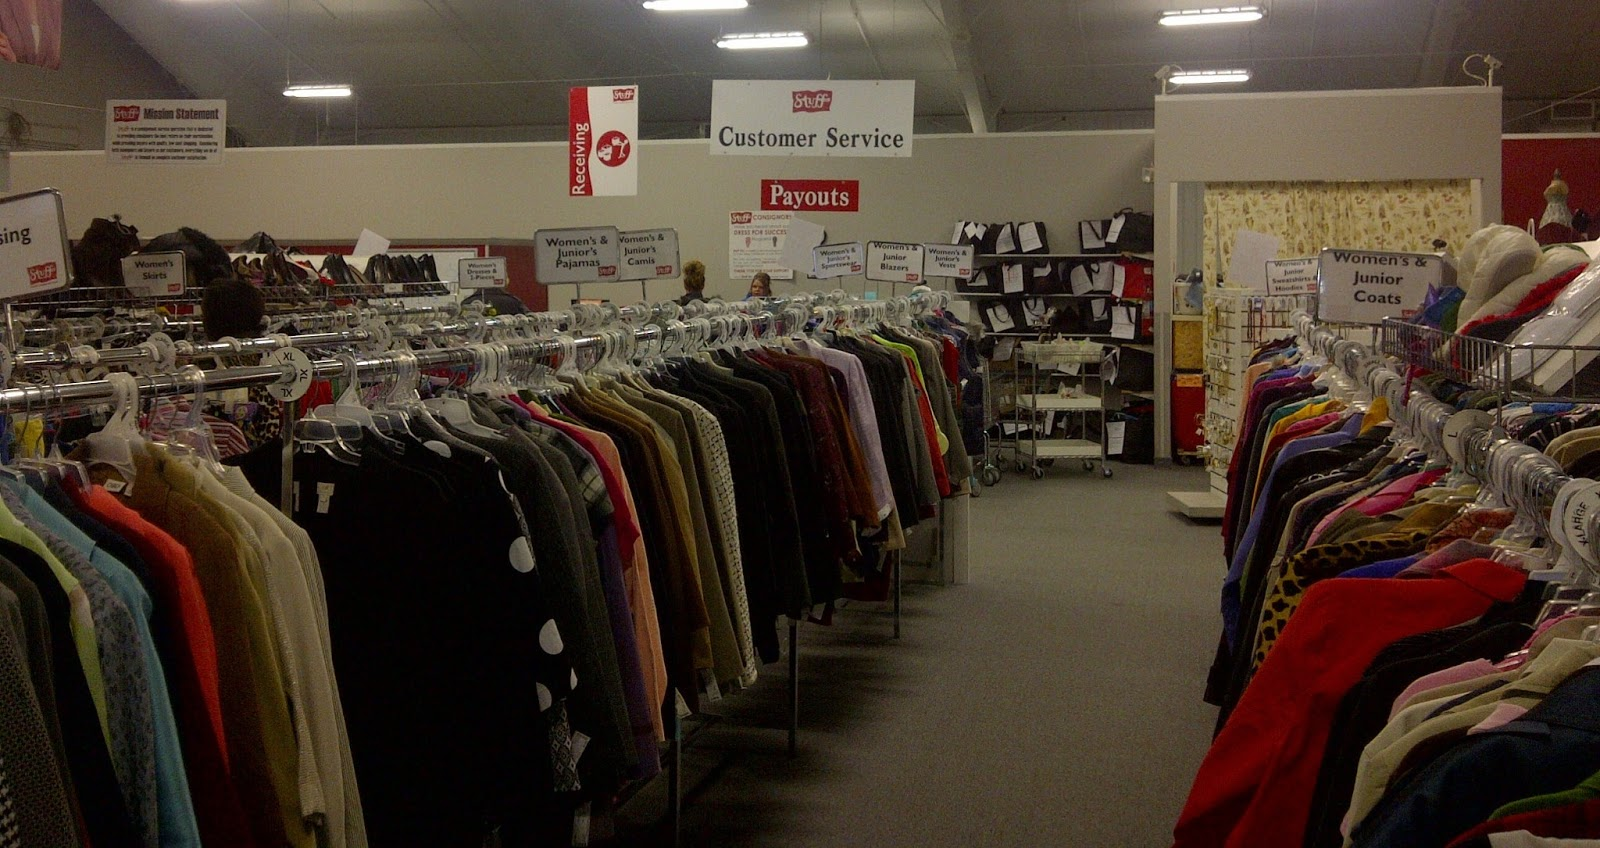 How To Sell Used Items At A Consignment Shop And Get Cash